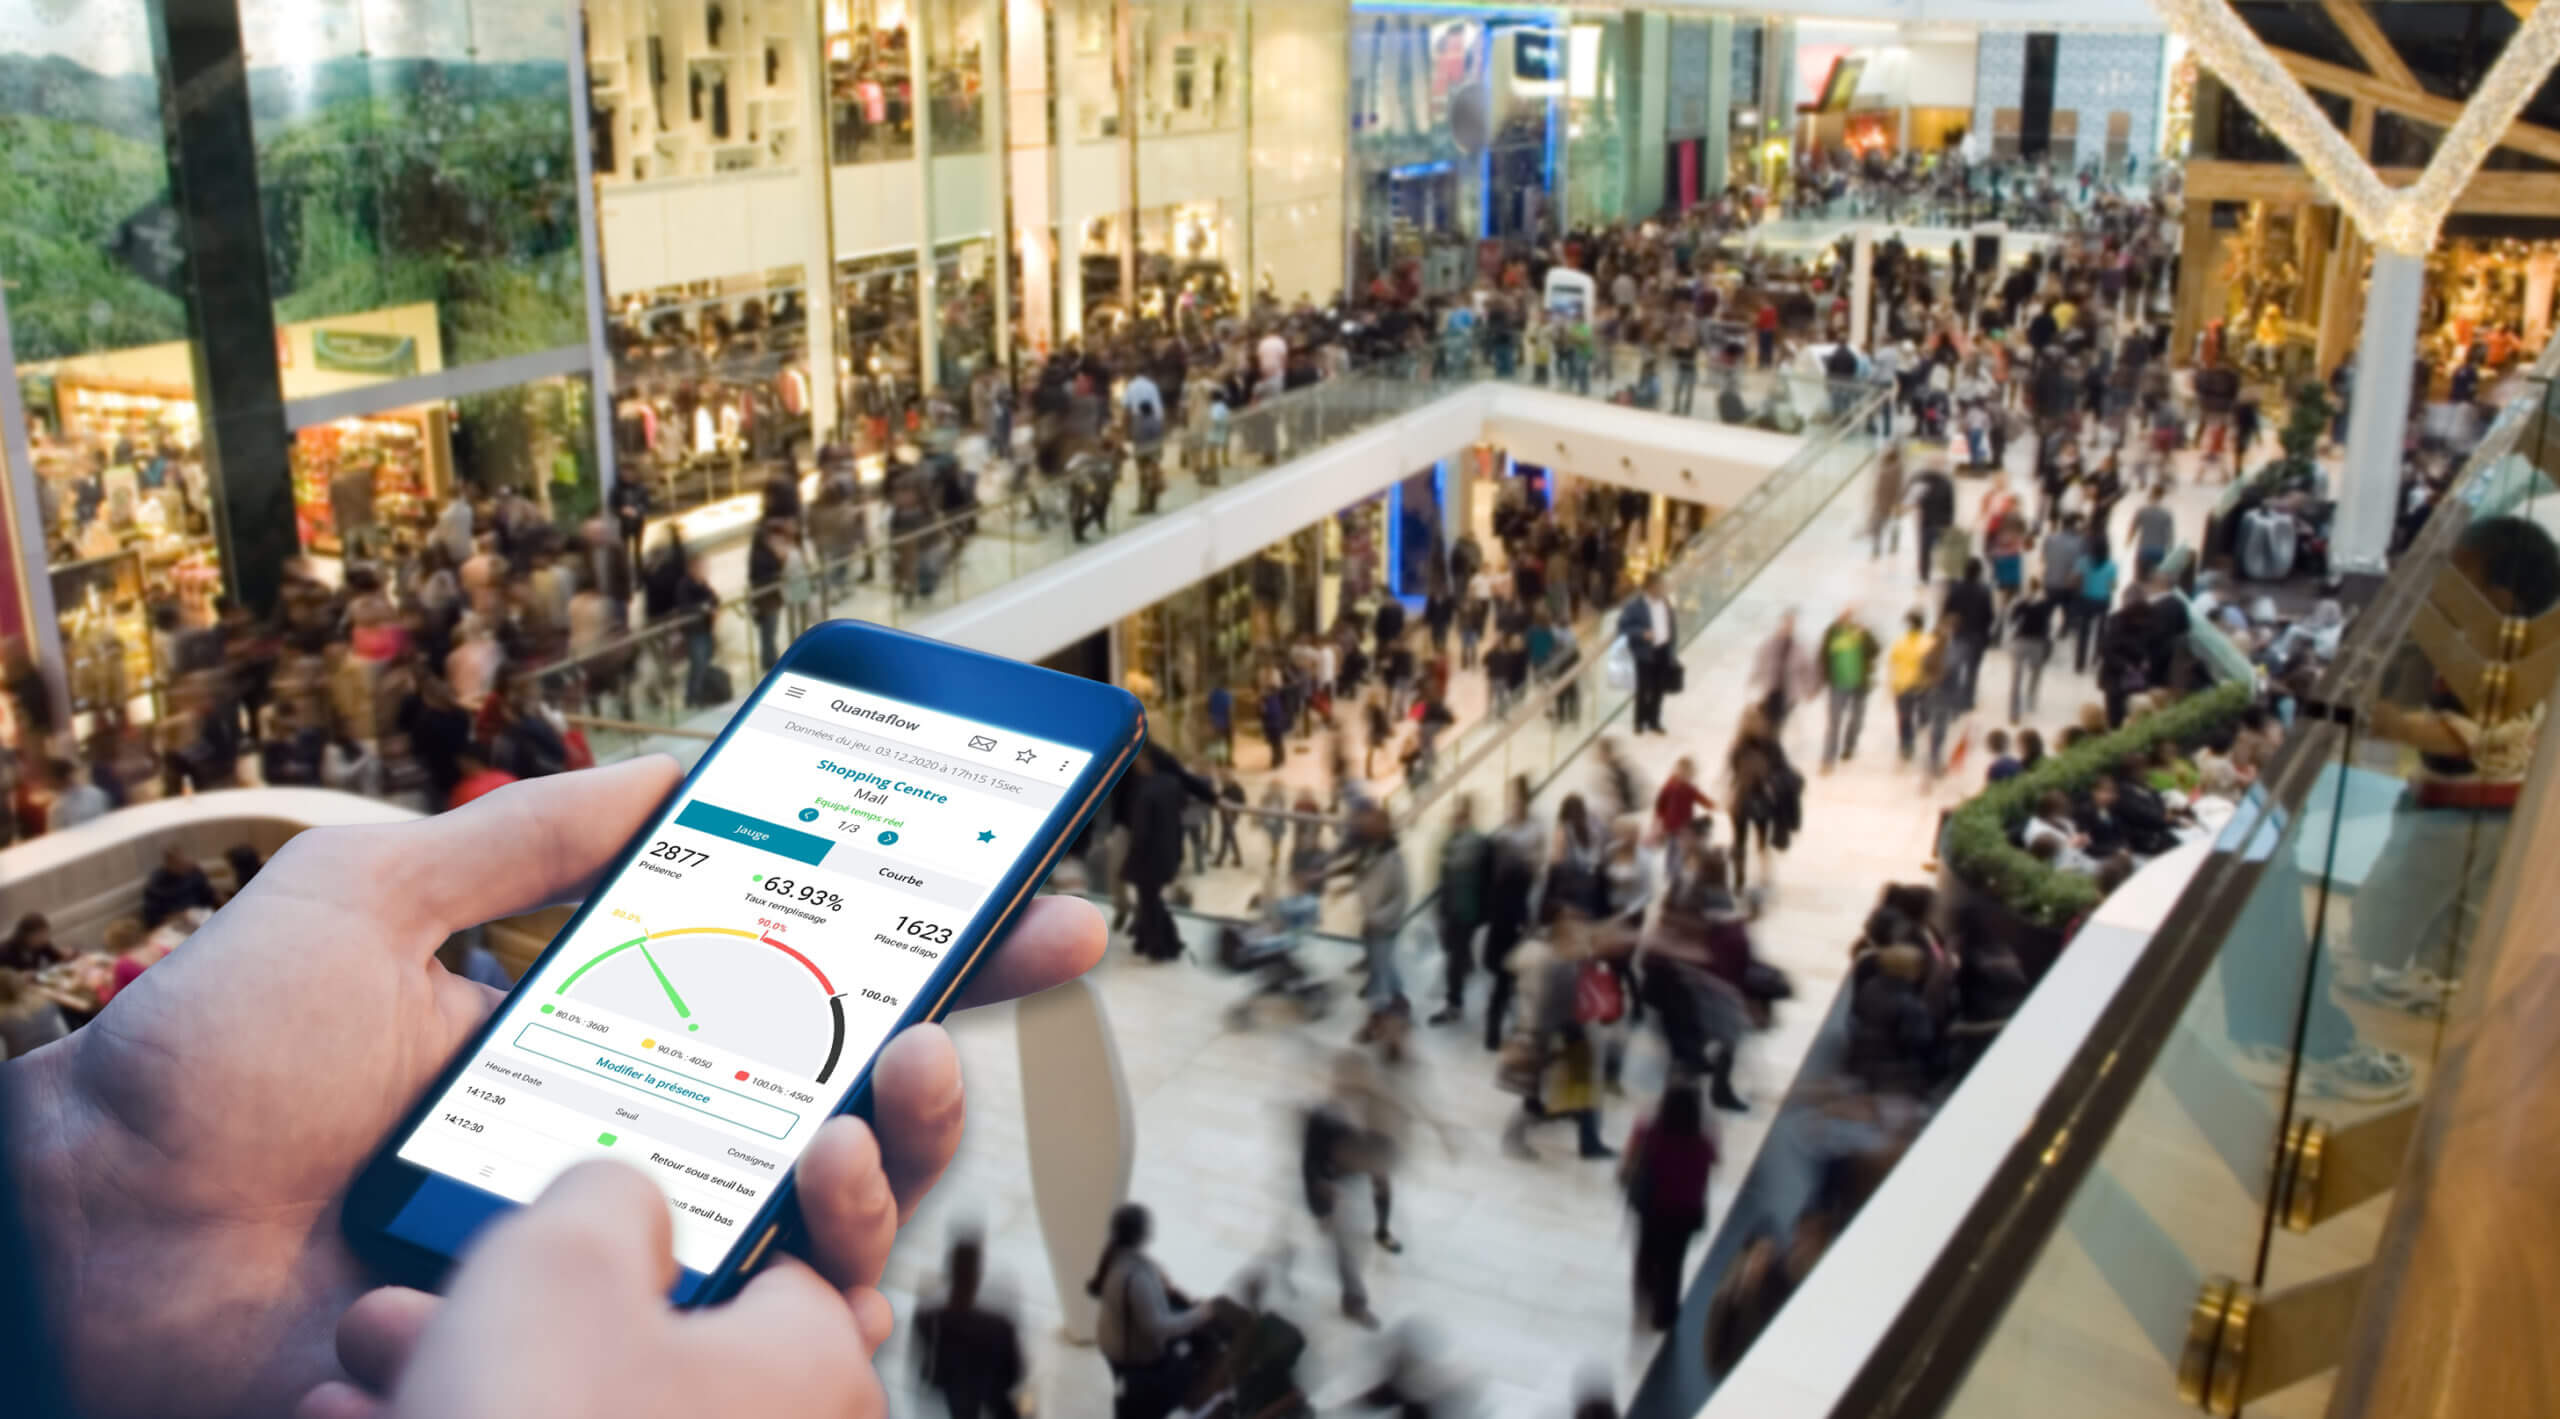 Live application - real time presence